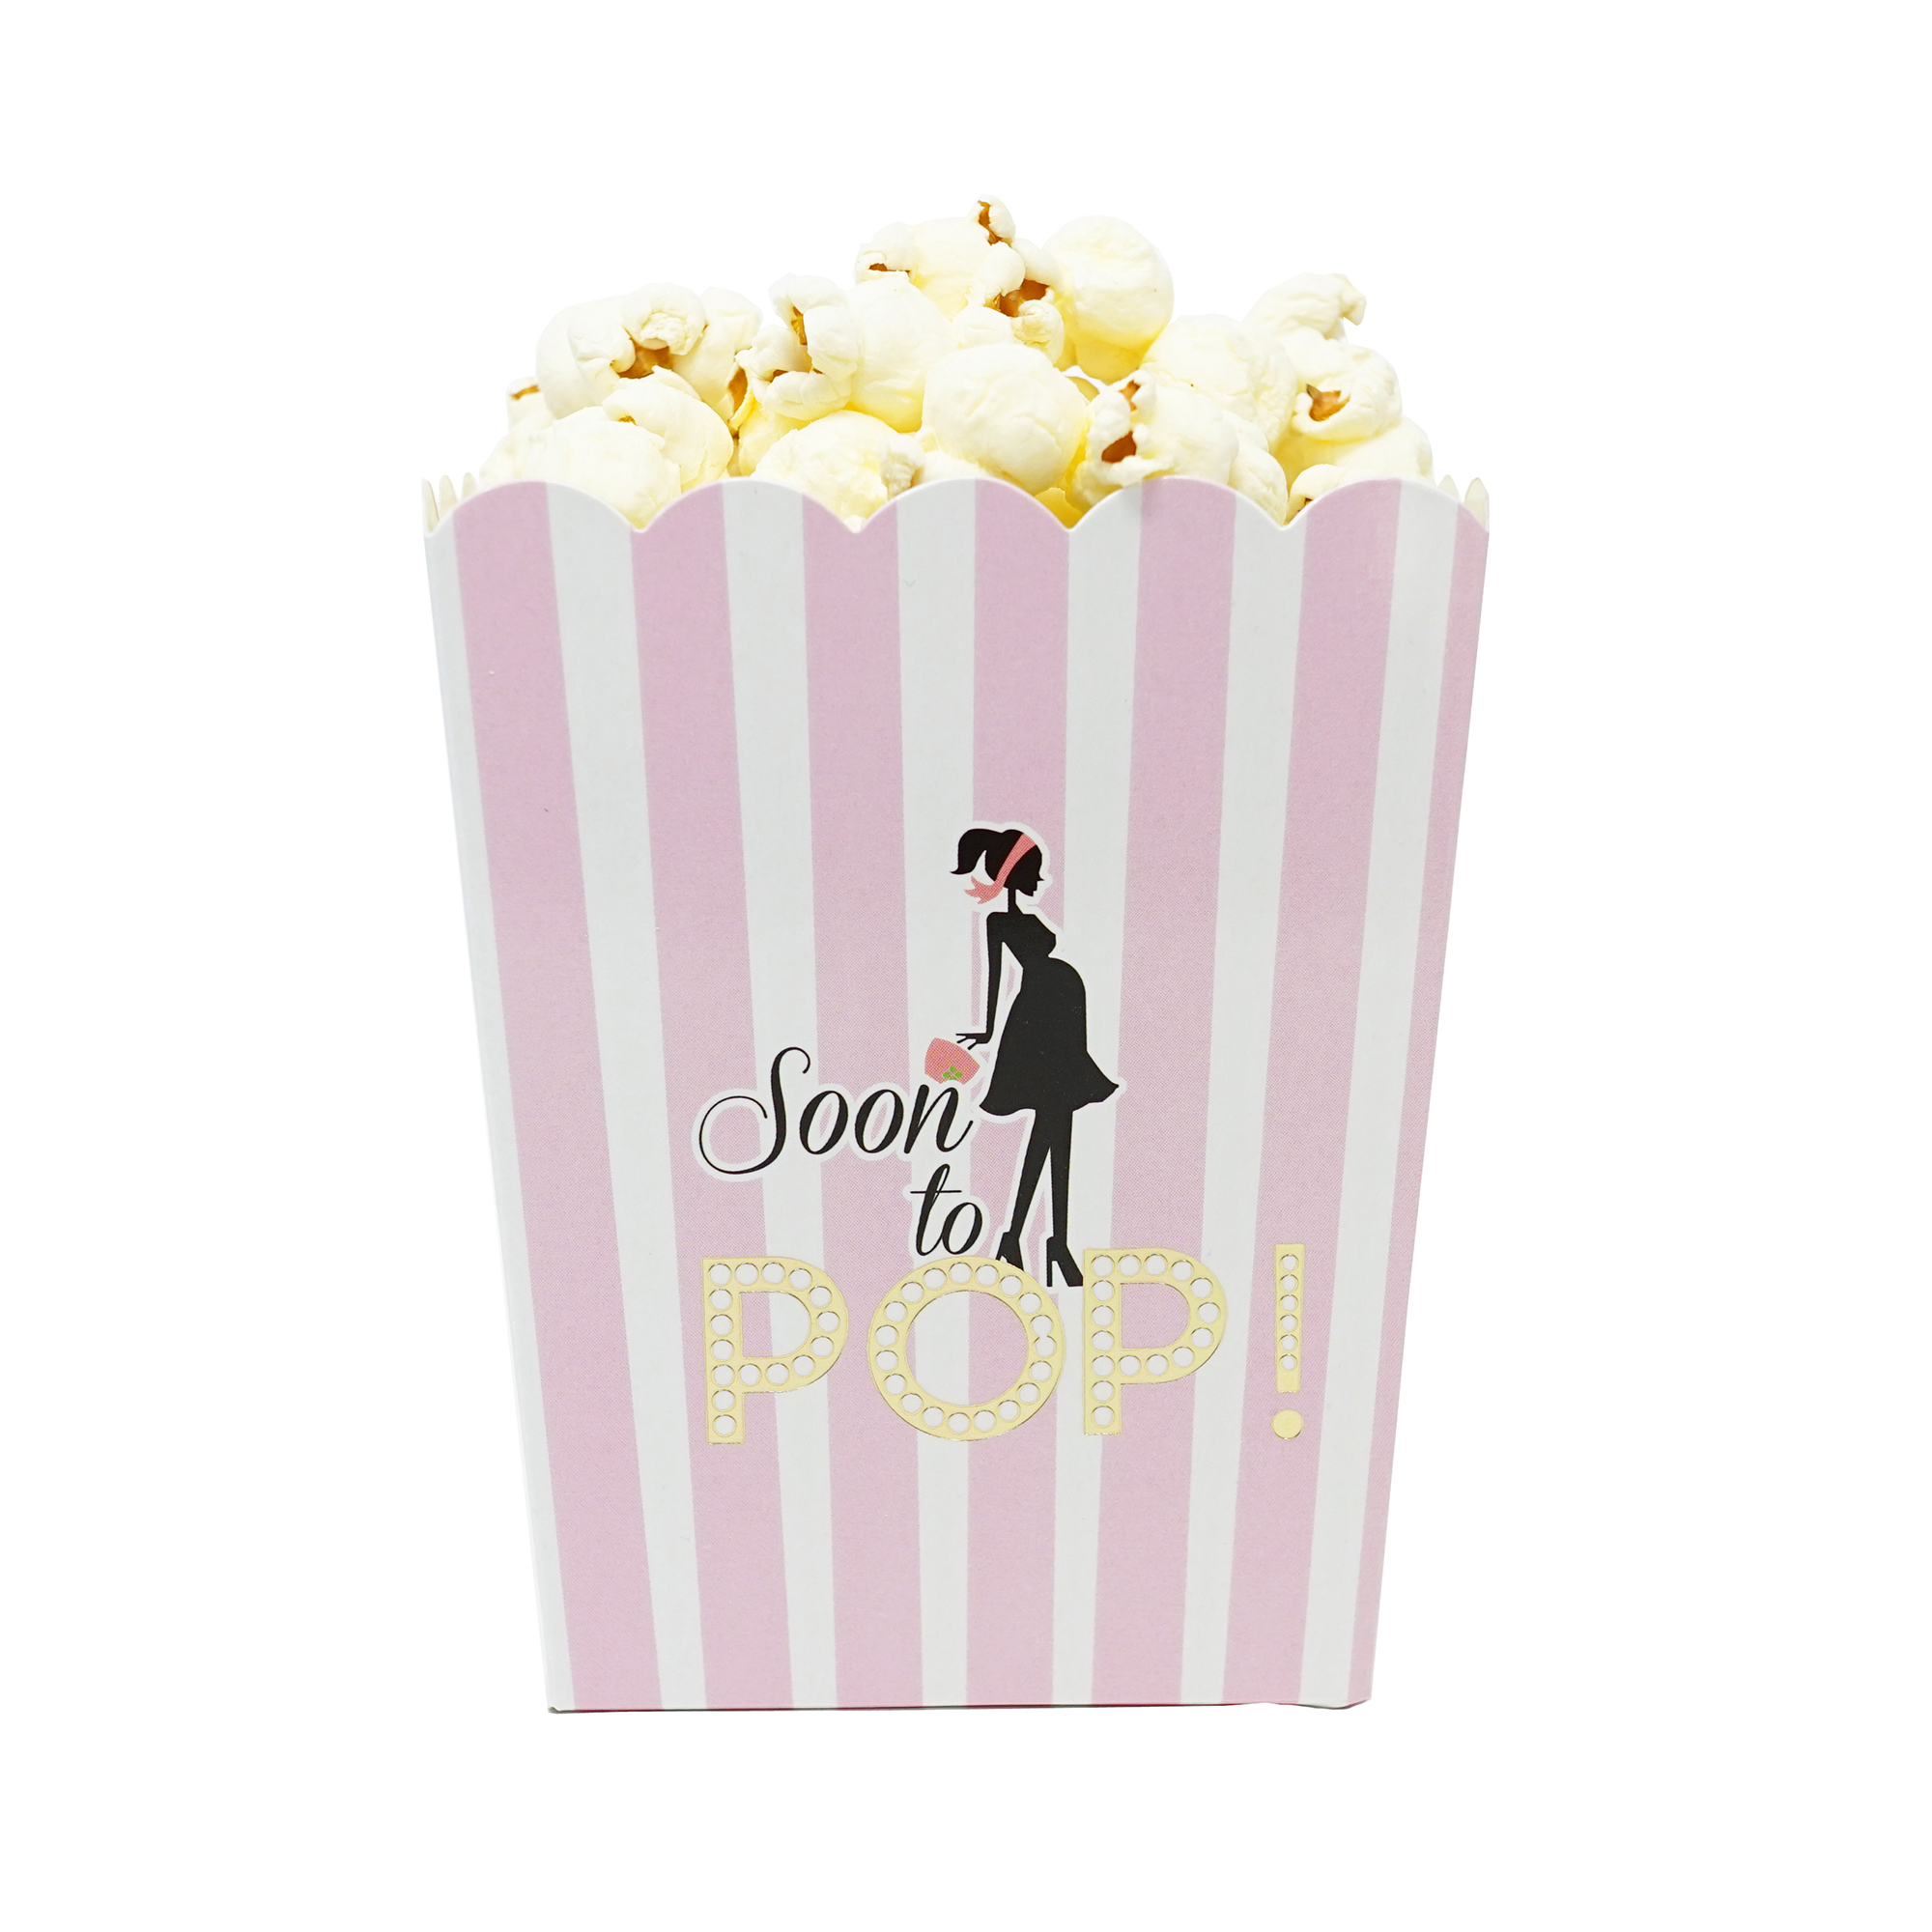 Soon To Pop Popcorn Candy & Favor Boxes, Baby Boy, Small Size ...